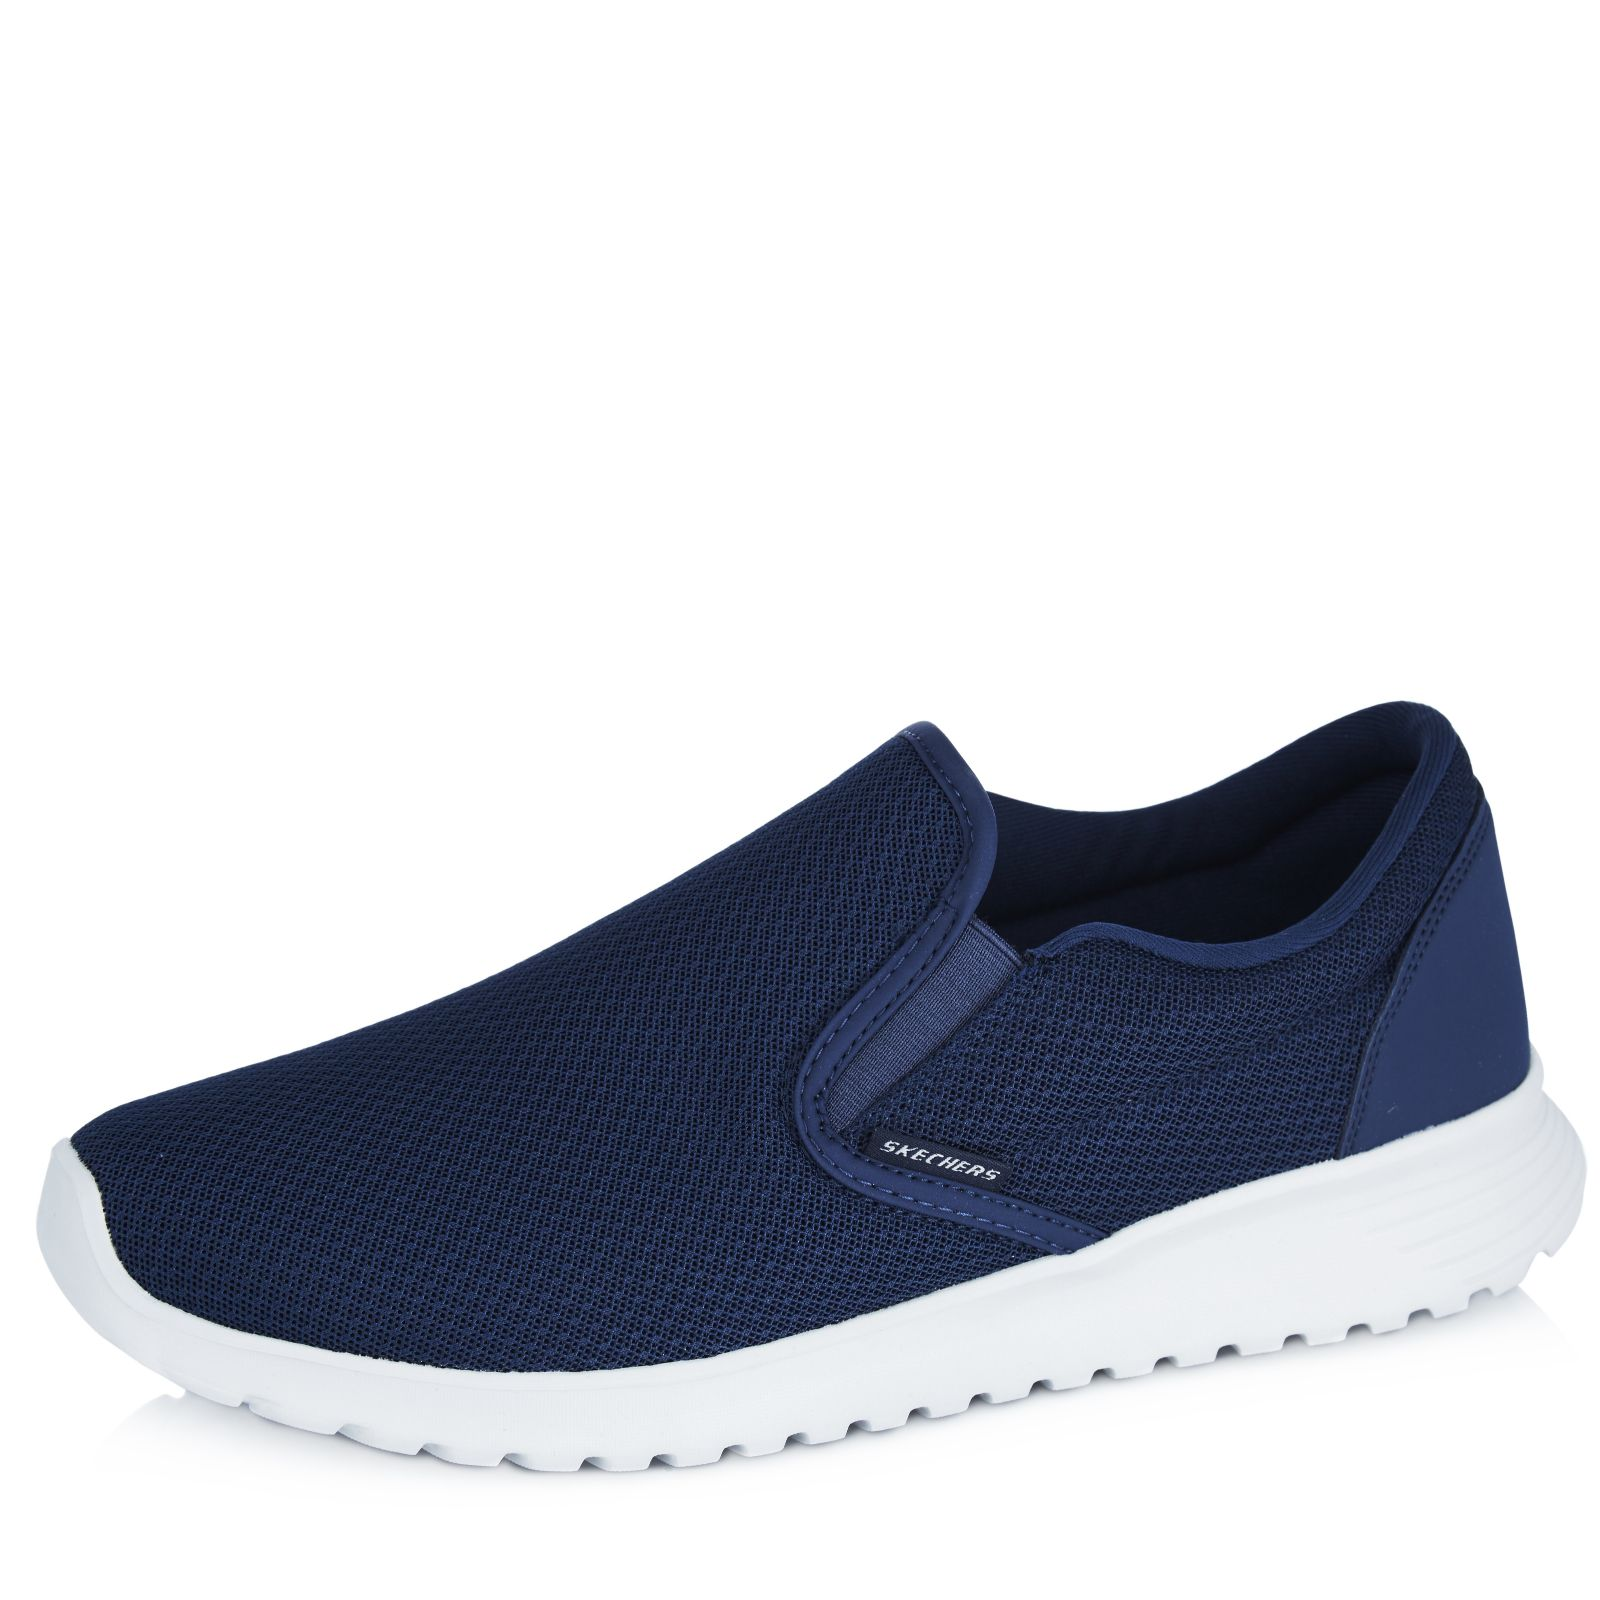 new concept 5171c 381df Skechers Zimsey Mesh Men s Slip On Shoe with Air Cooled Memory ...